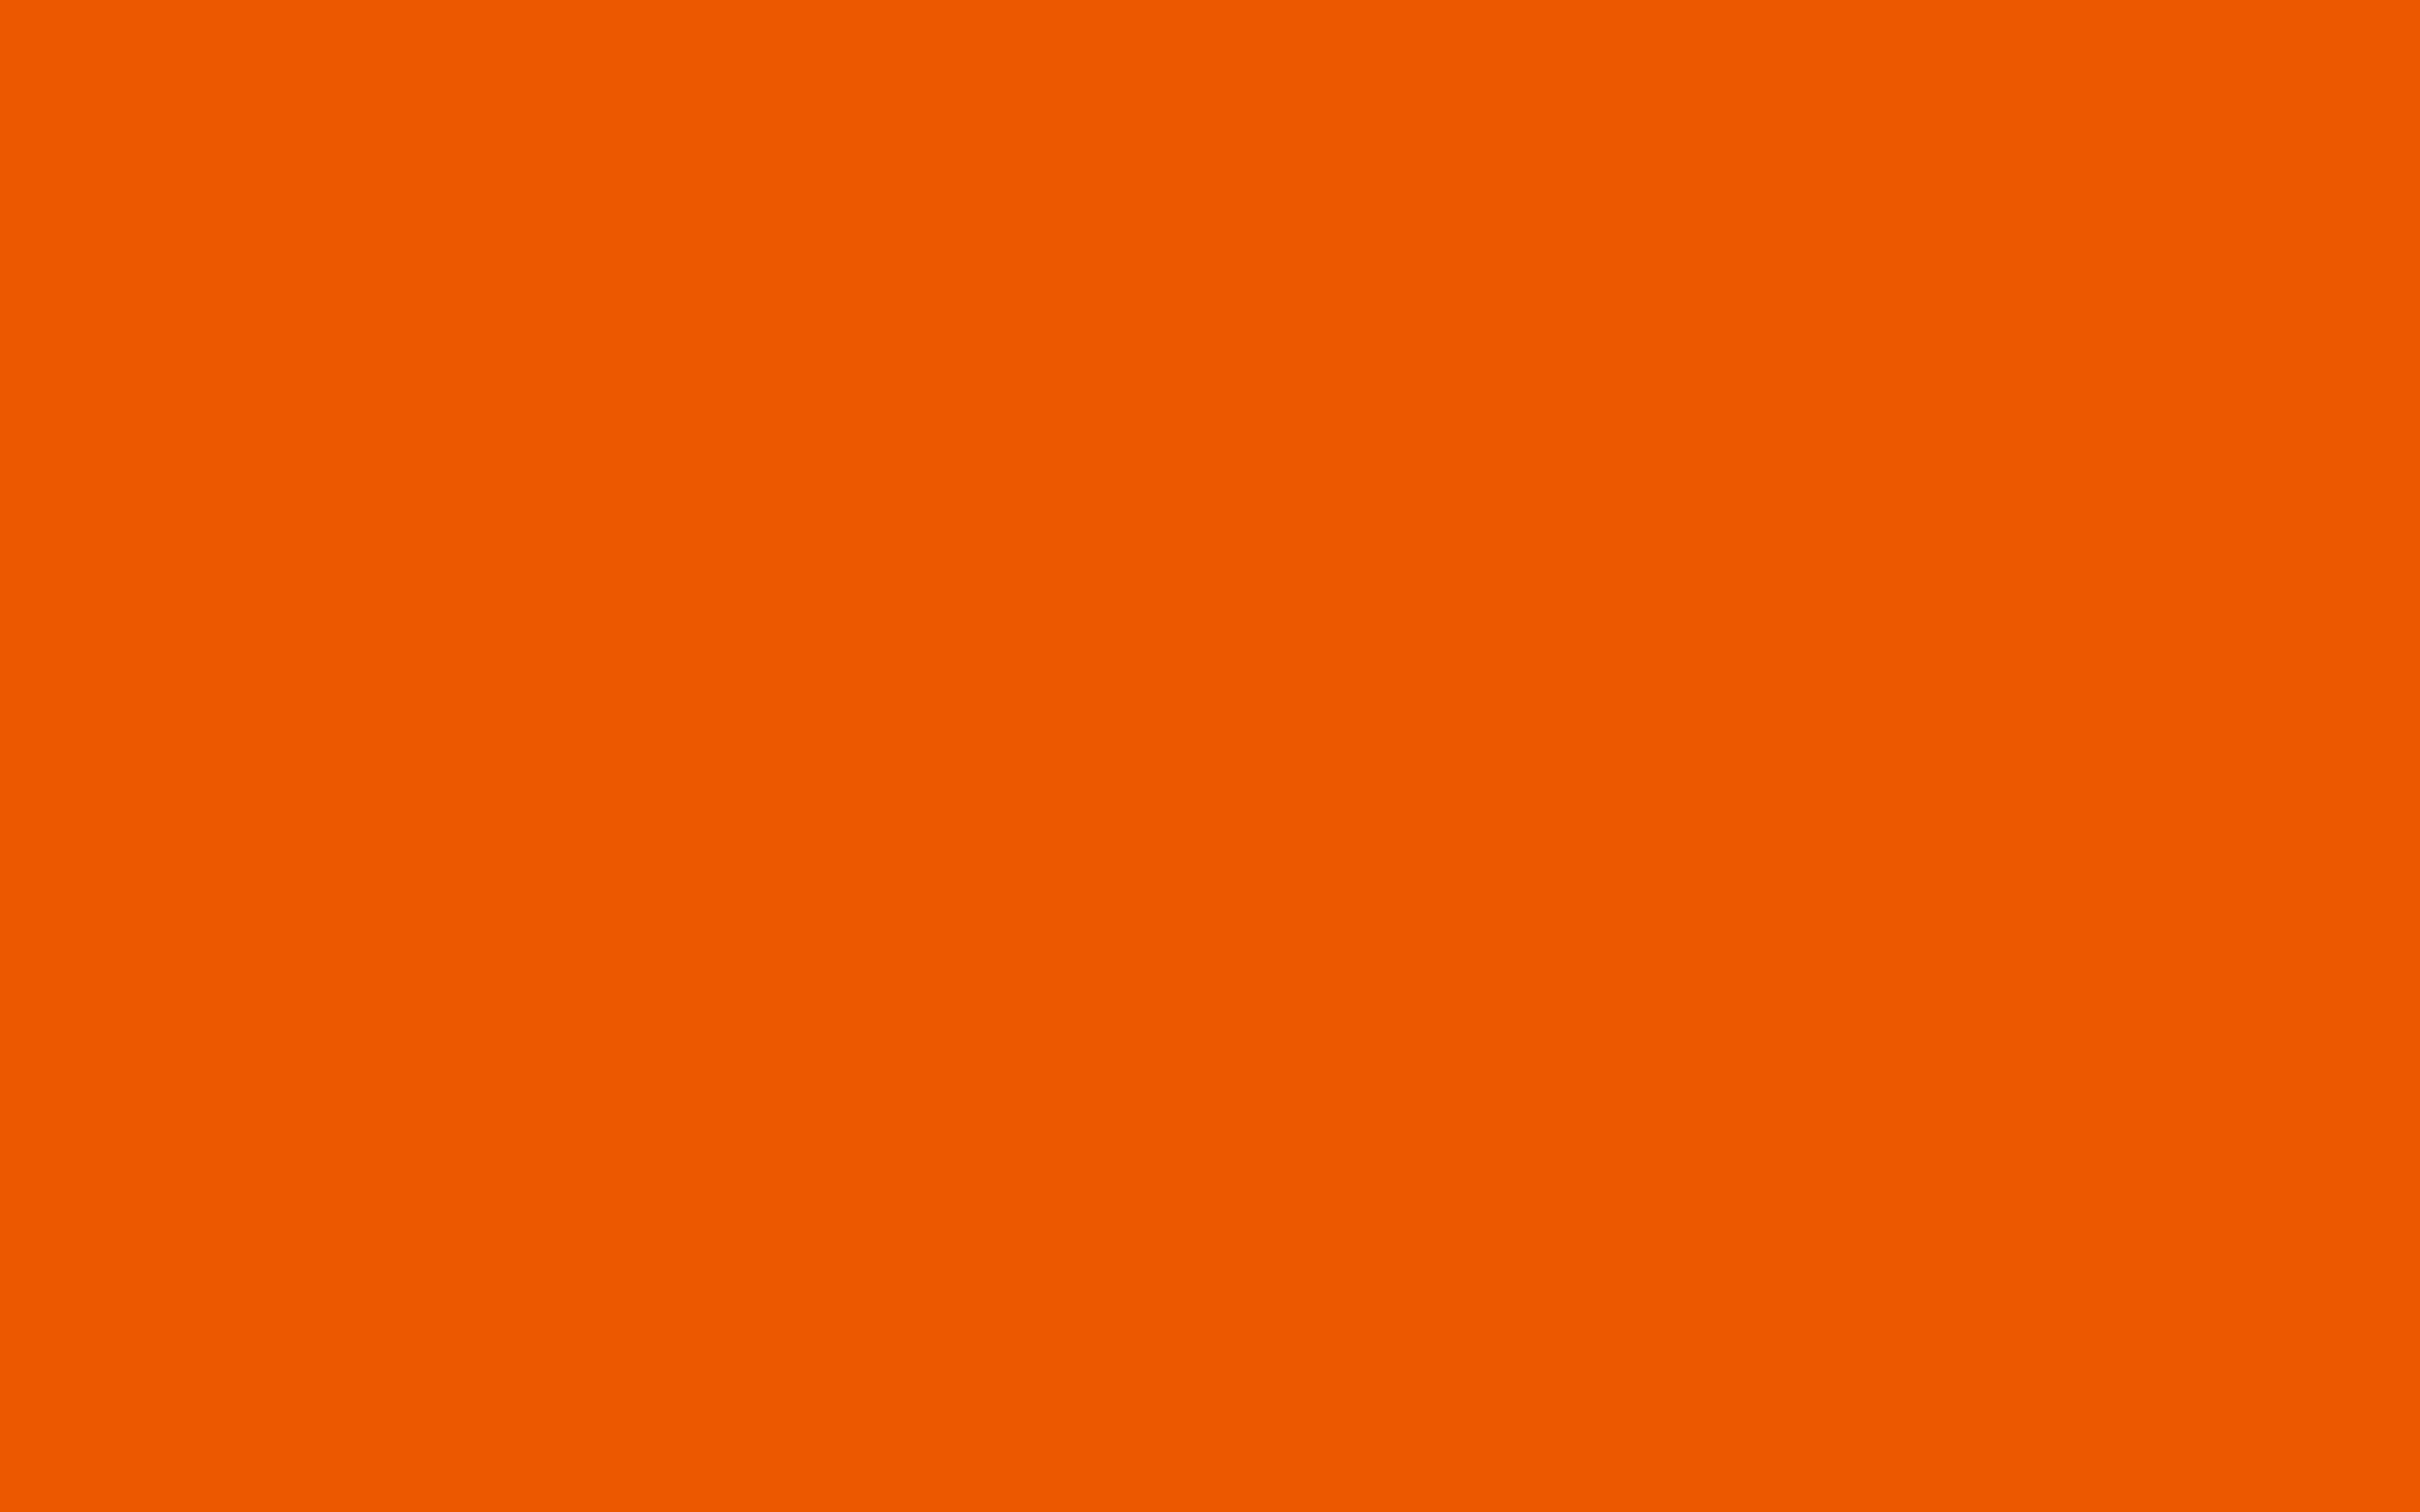 2560x1600 Persimmon Solid Color Background